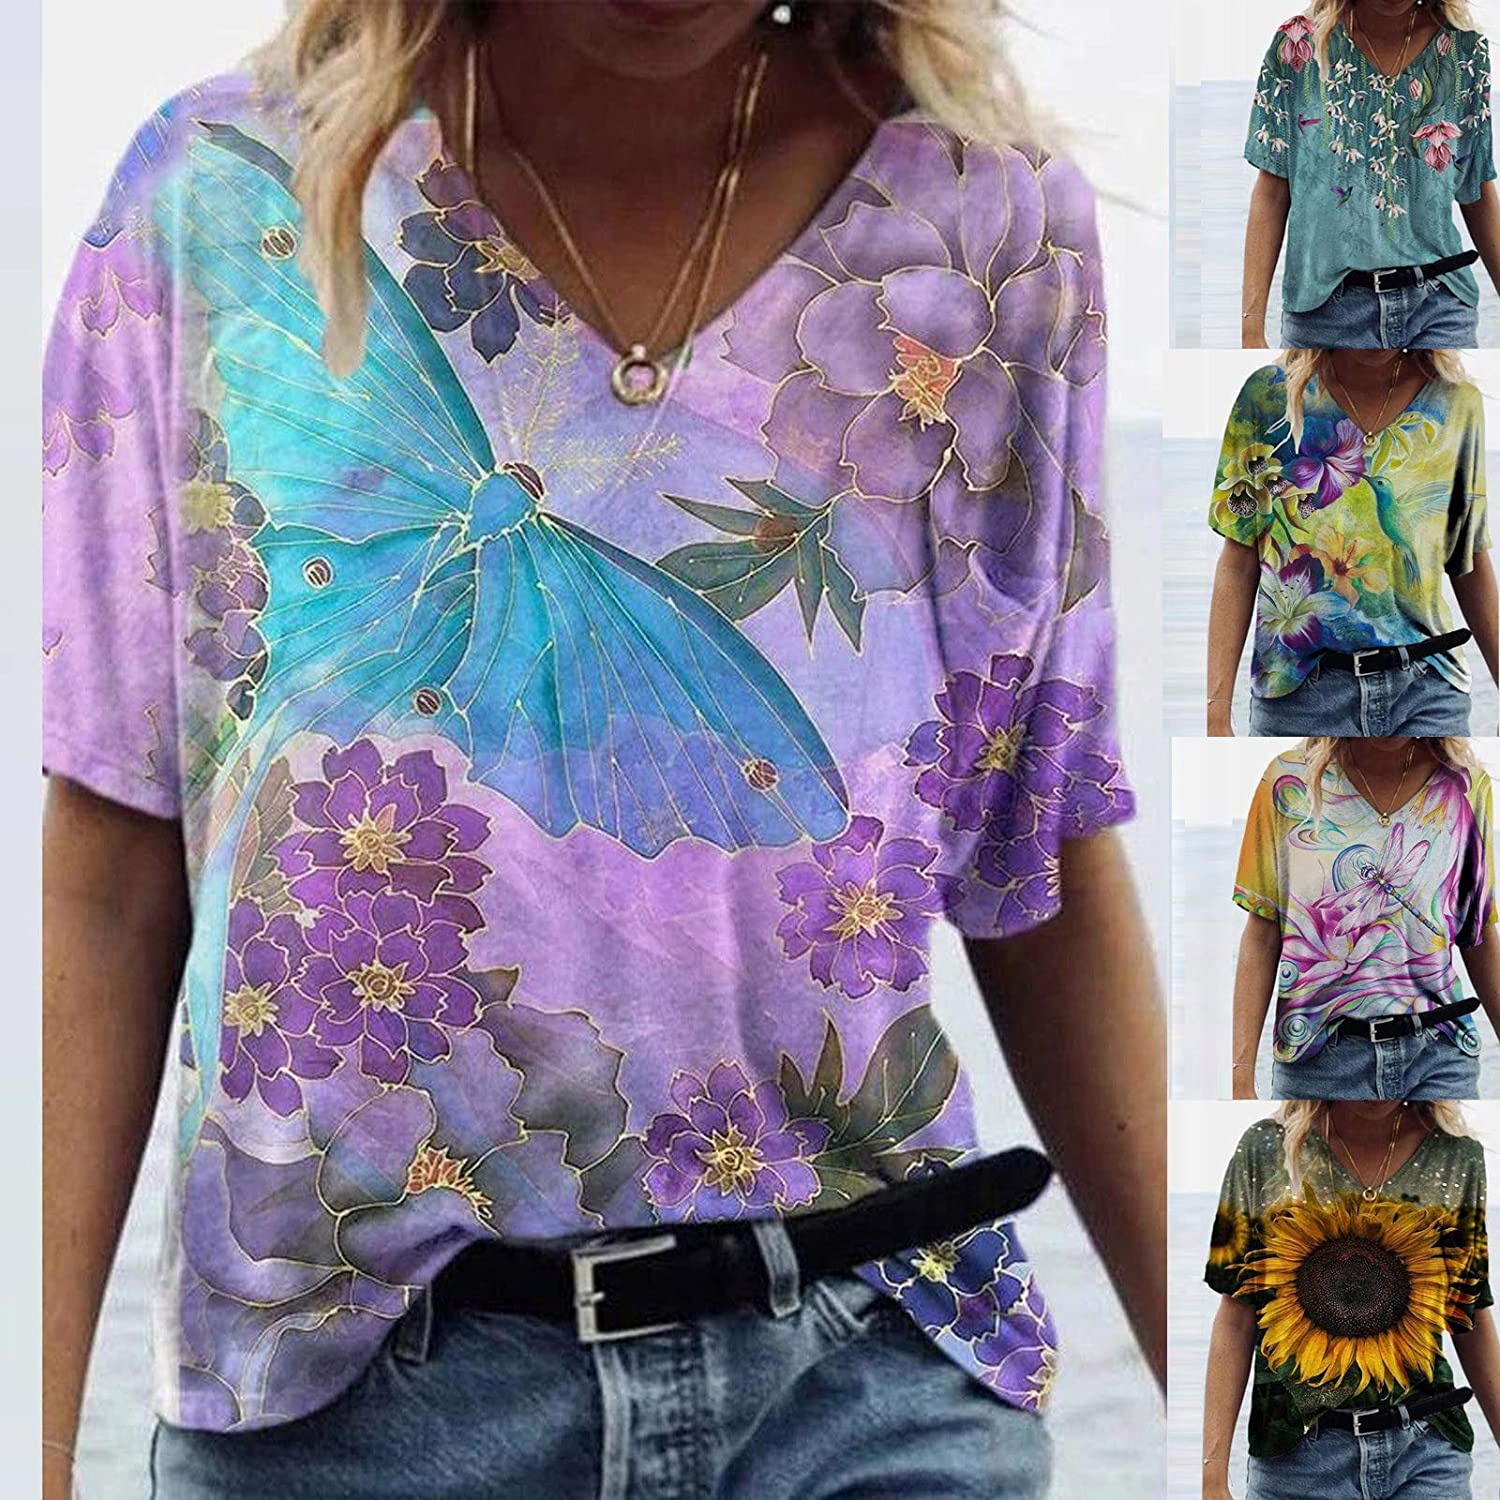 felwors Womens Short Sleeve Tops, Womens Casual Summer V-Neck Loose T-Shirts Workout Shirt Funny Shirts Blouse Tops